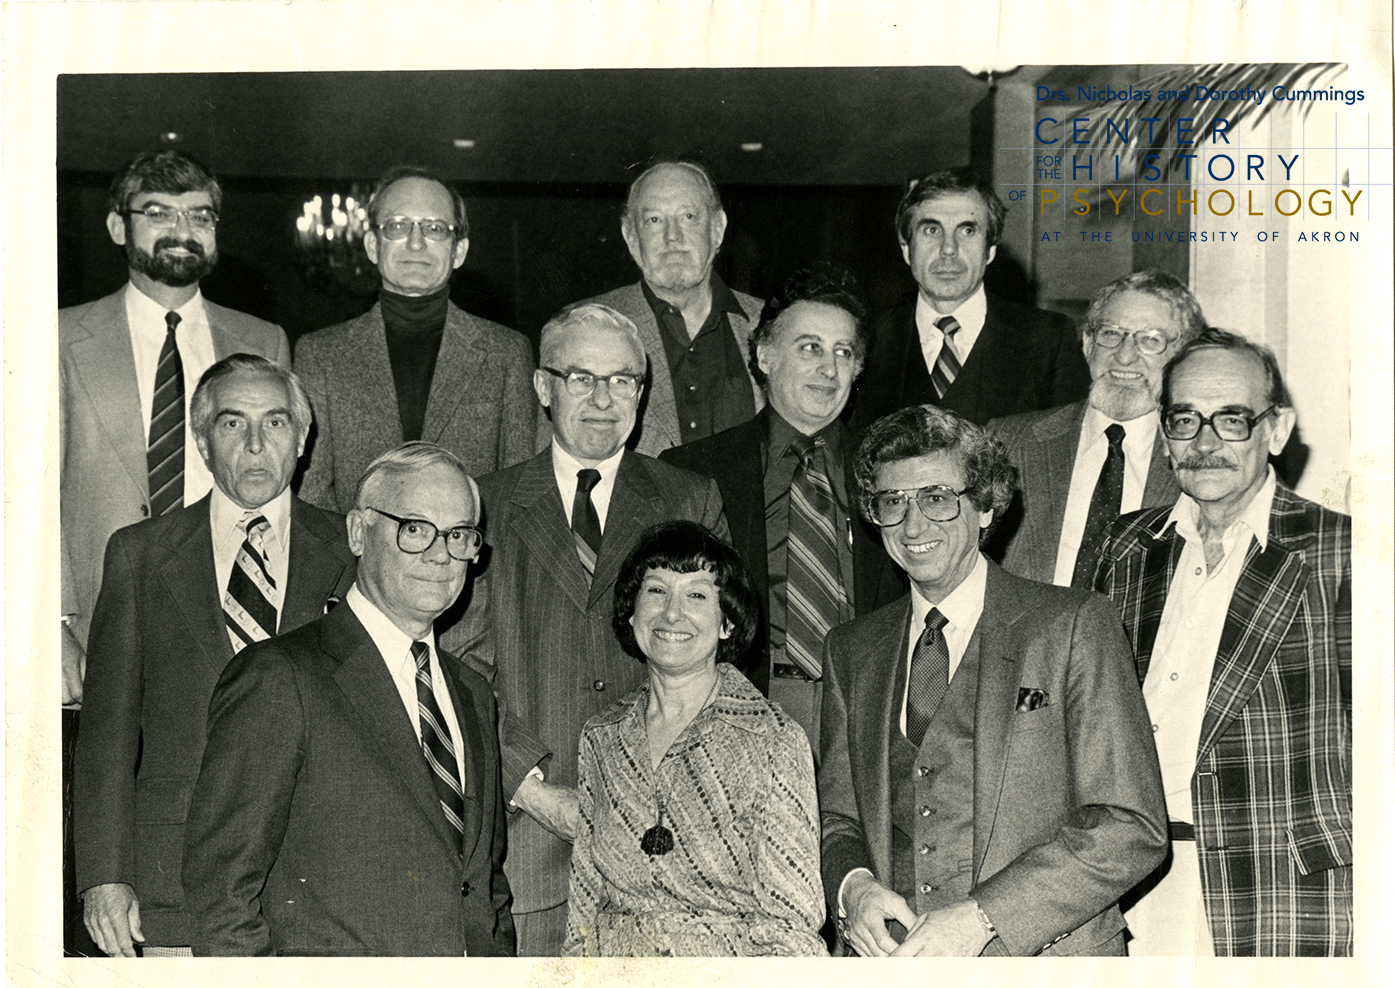 V81_folder10_APA_BoardOfDirectors_1981_WM